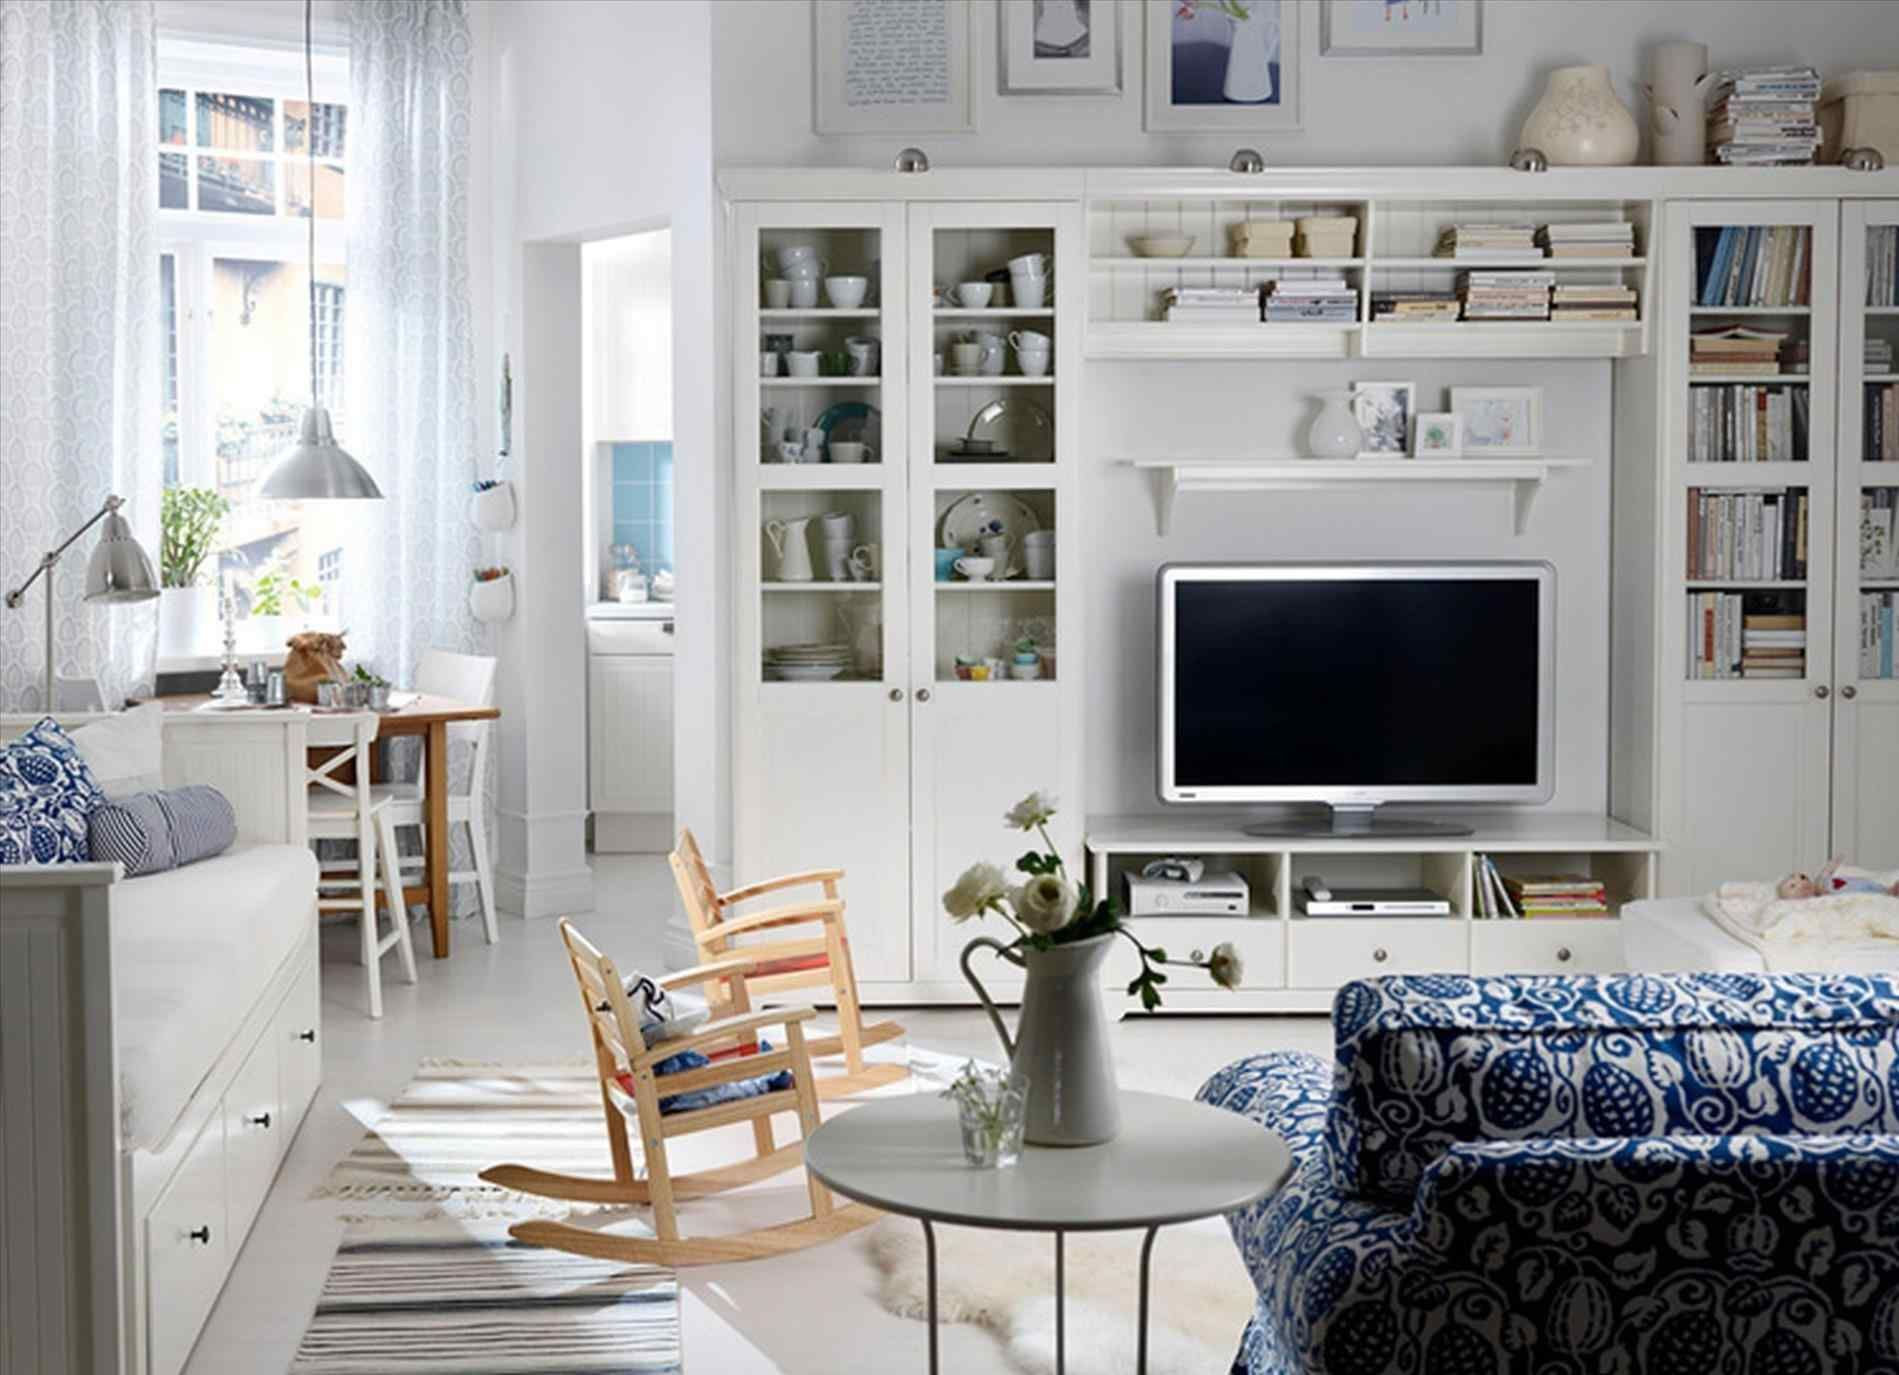 Wicked top and awesome interior design ideas with ikea furniture https breakpr also rh pinterest